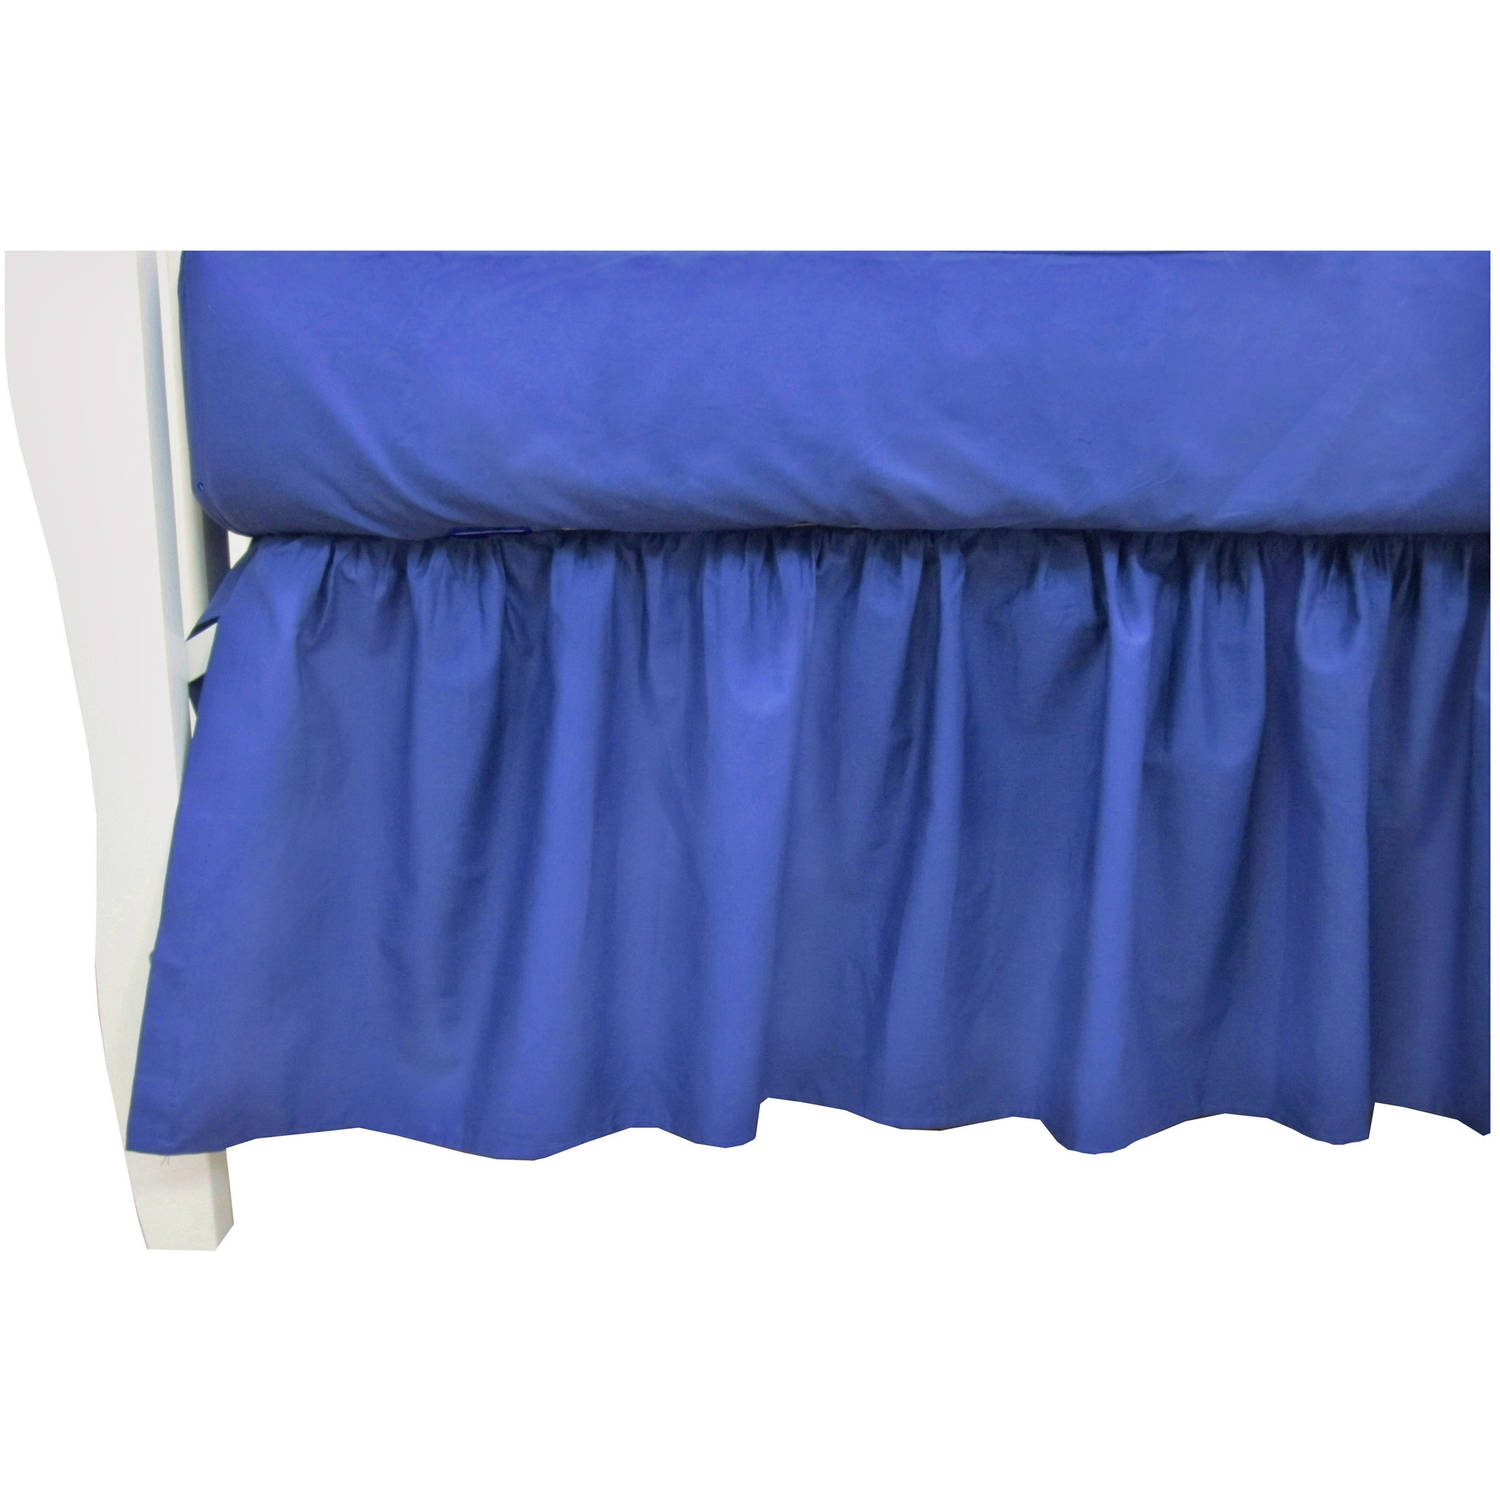 TL Care Cotton Percale Crib Bed Skirt, Royal